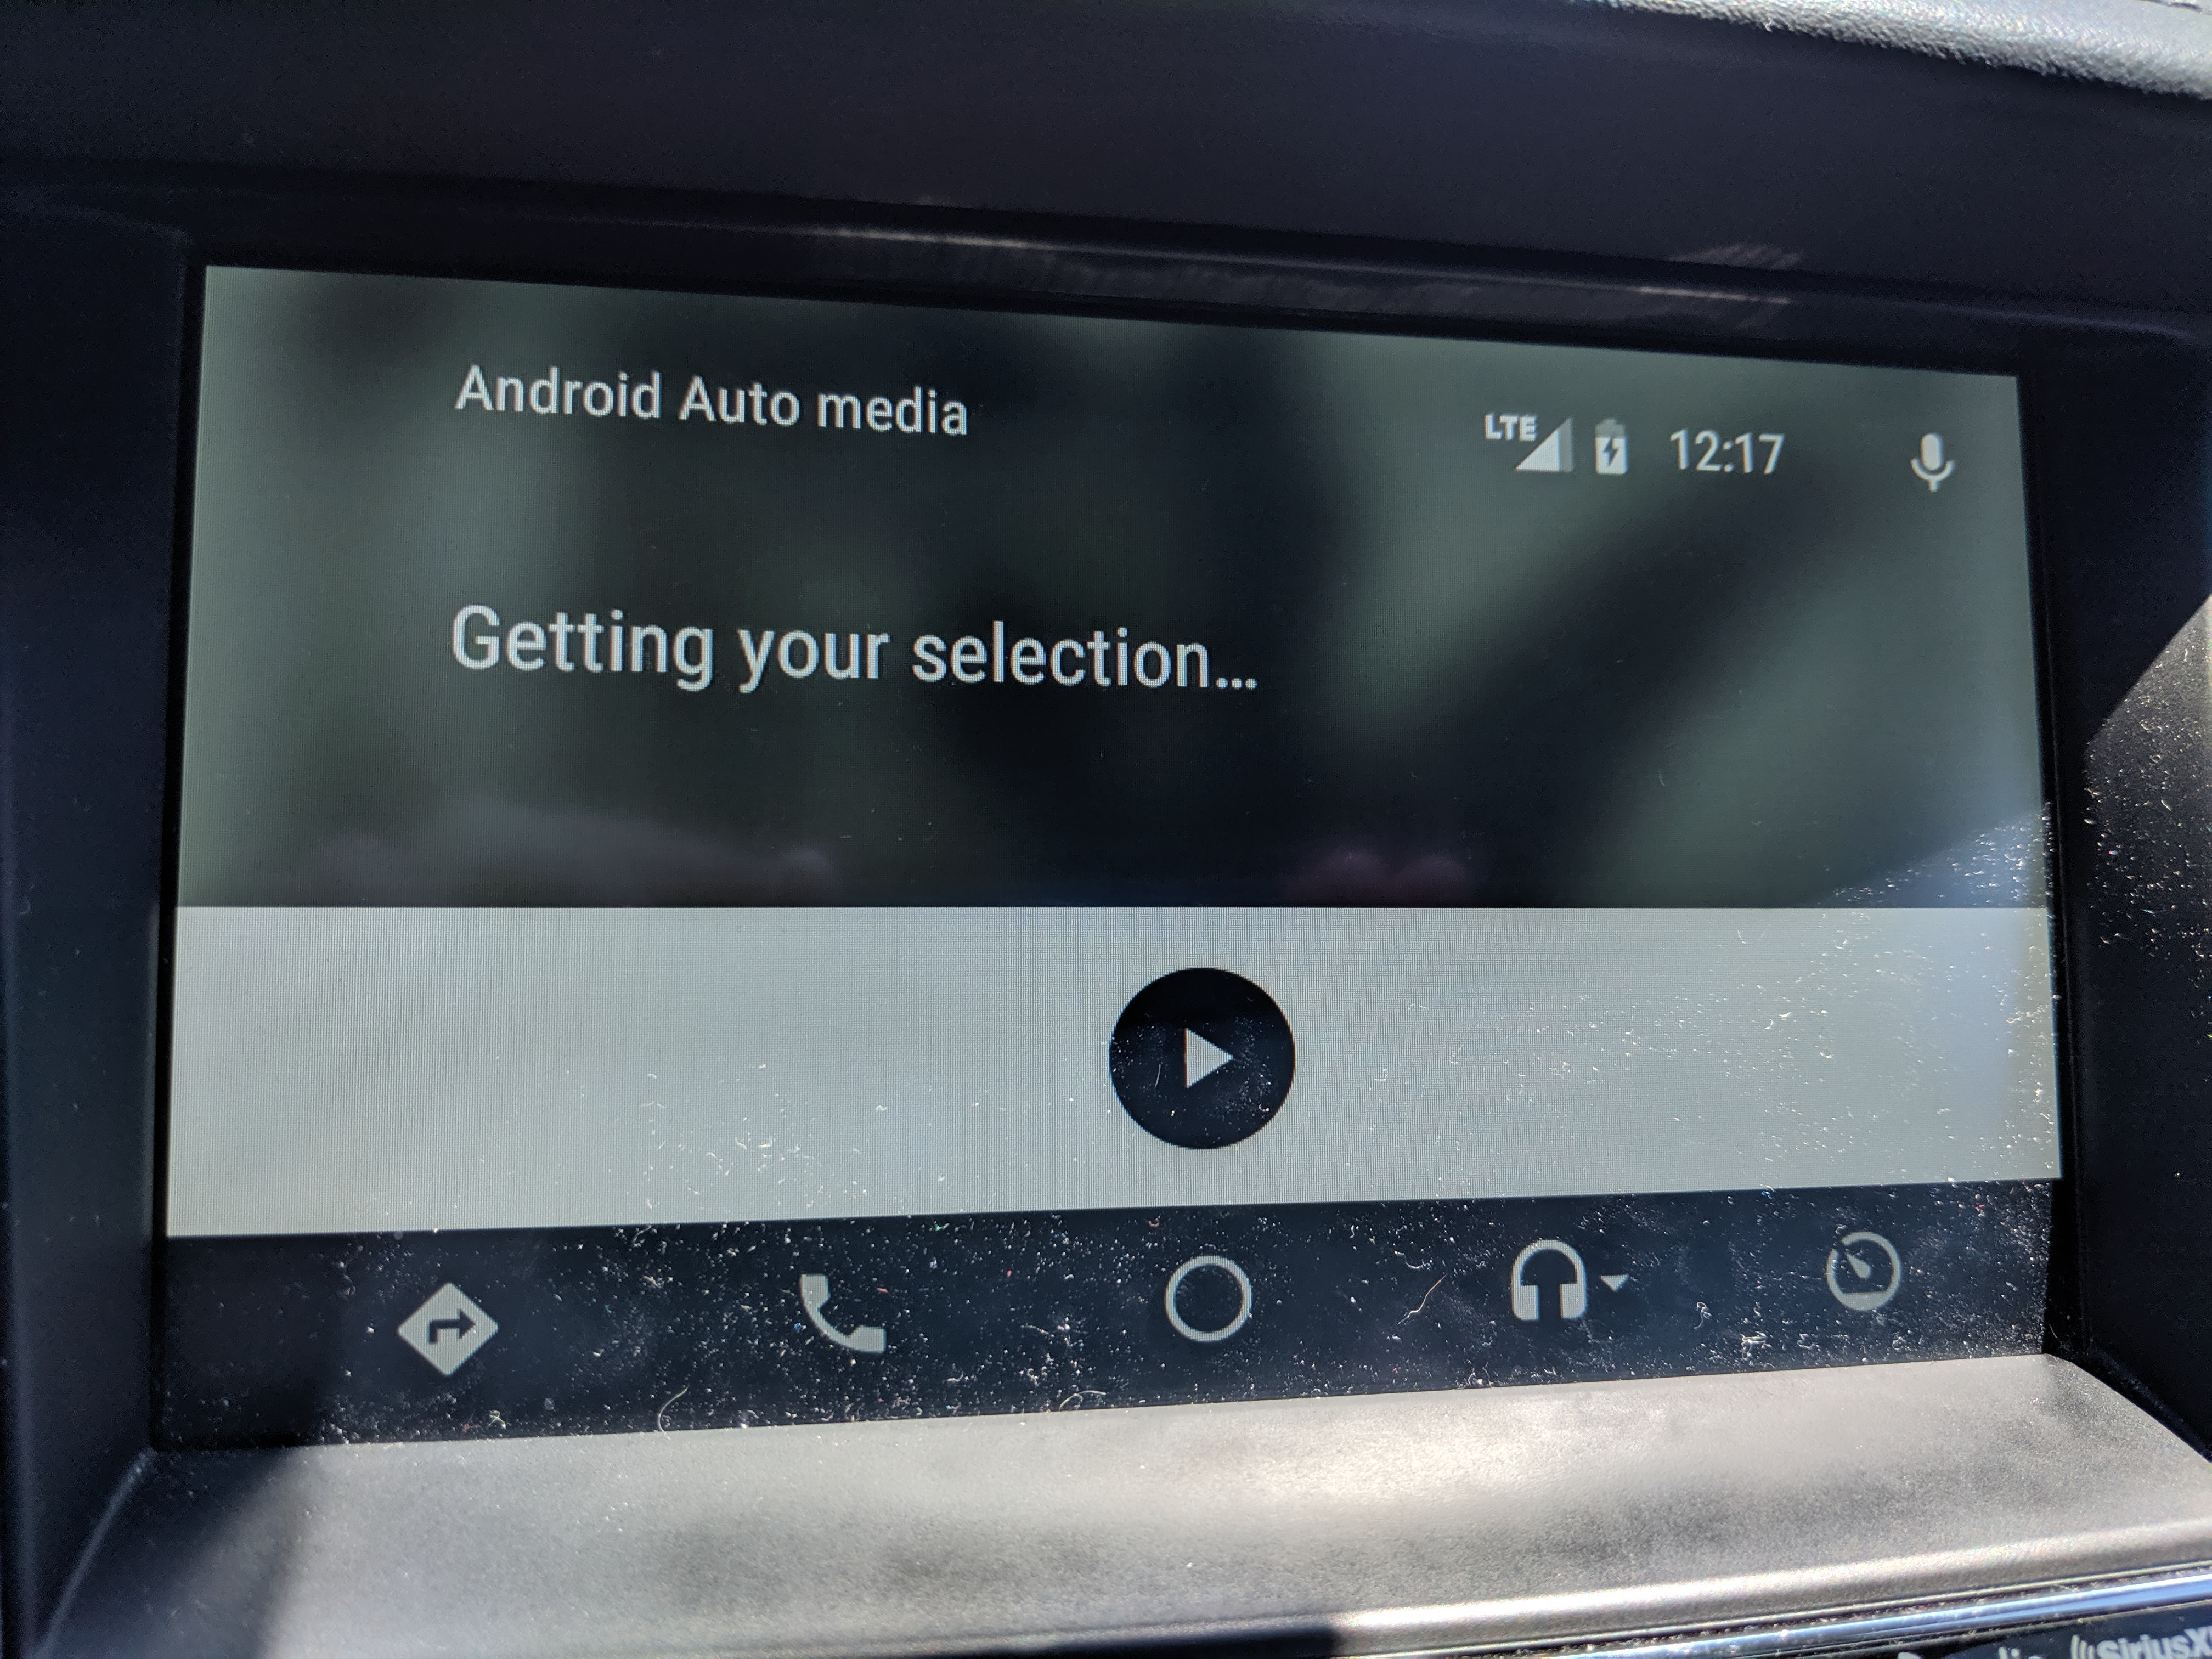 YouTube Music gets stuck on Android Auto media  Getting your